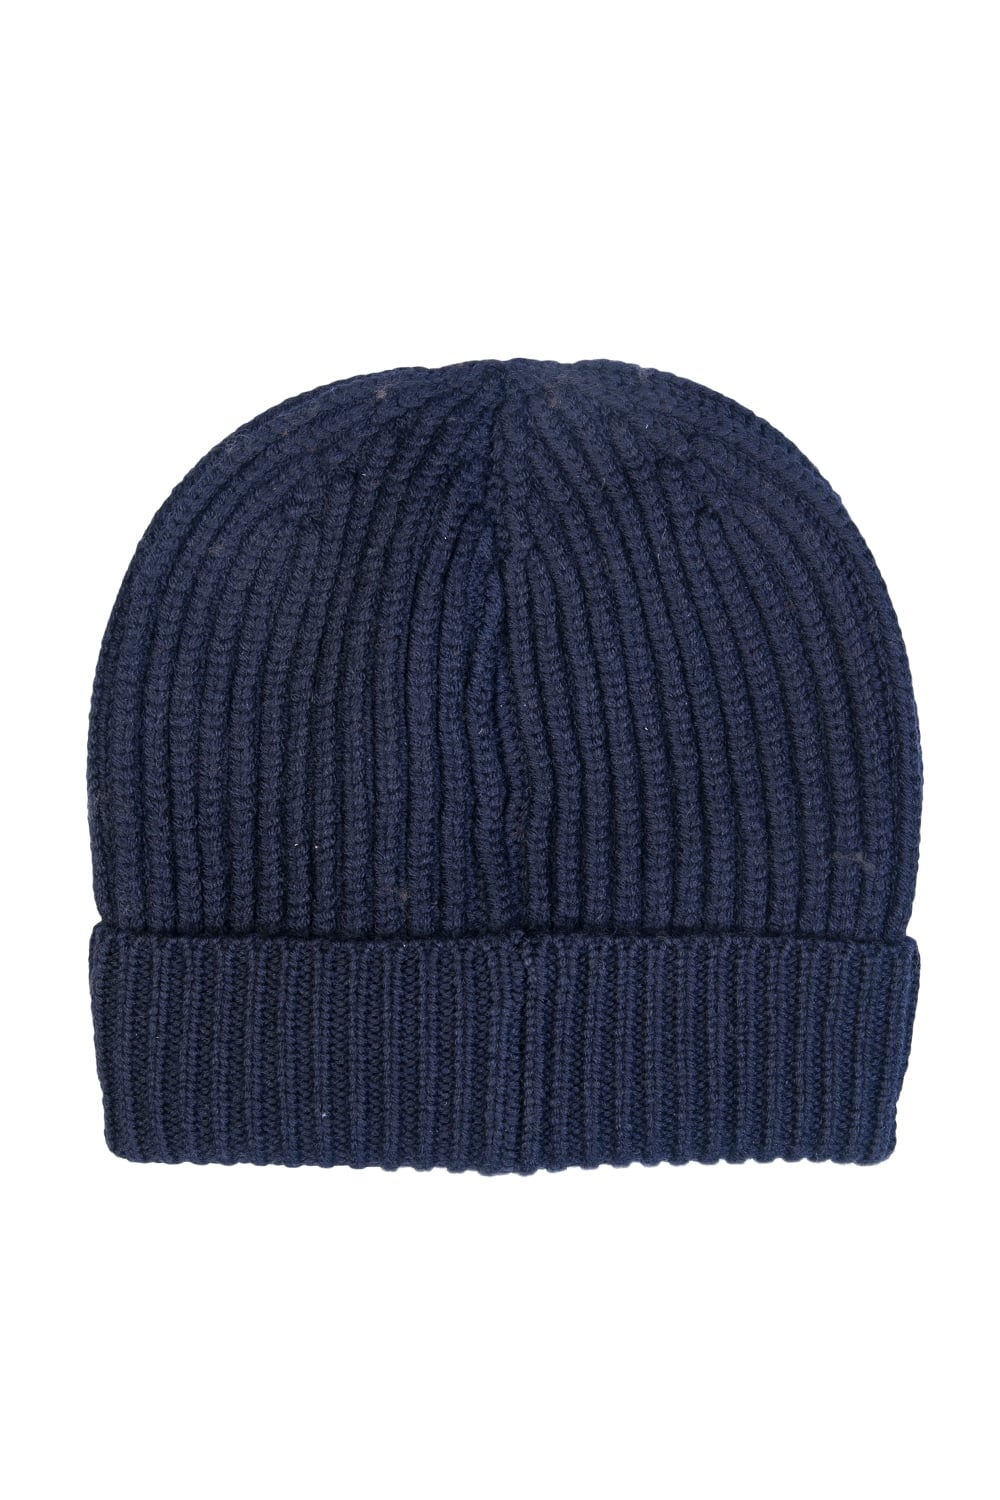 huge discount good quality cheaper Details about Armani Jeans Hat / Cap 934029 7A757 Mens New